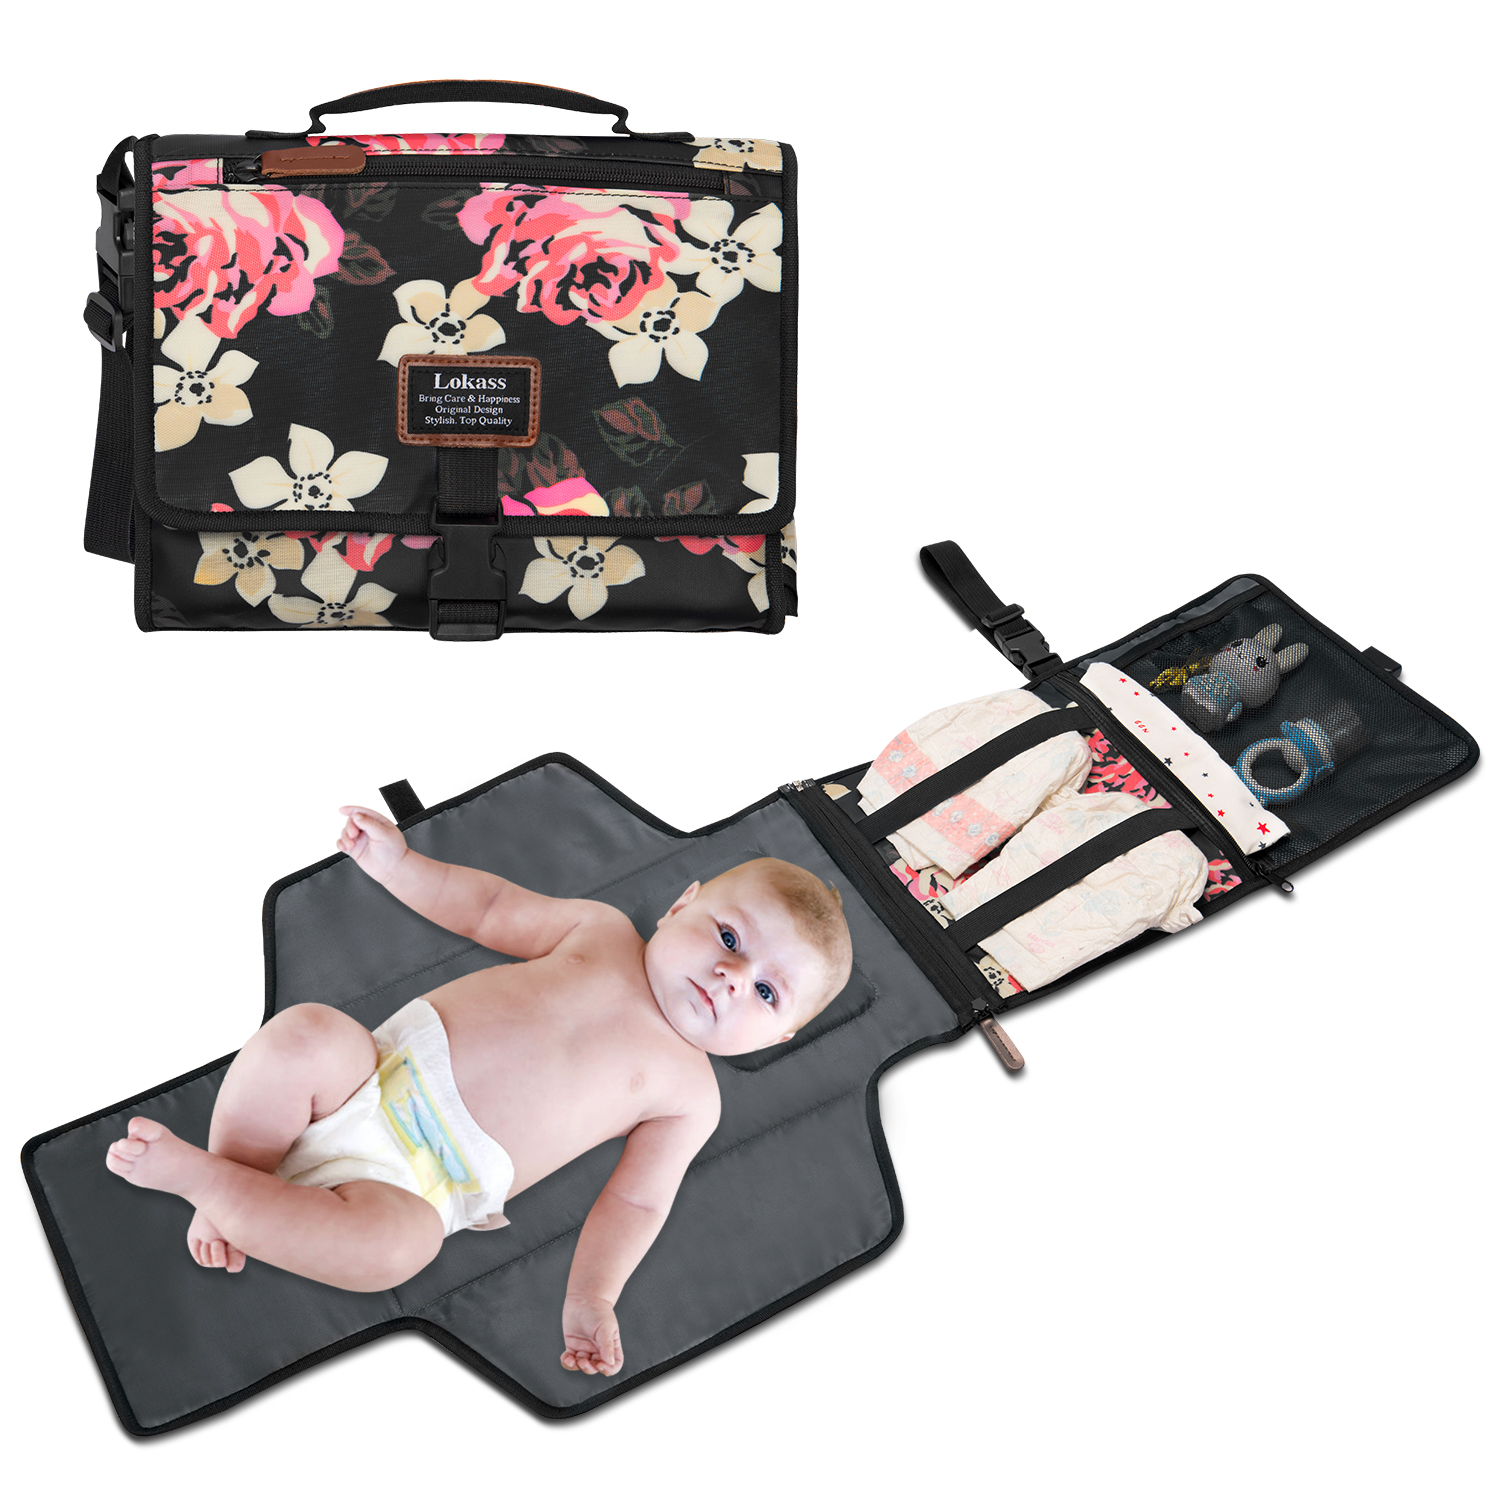 Portable Soft Diaper Changing Pad Clutch for Newborn Foldable Clean Hands Changing Station Baby Care Mat With Stroller StrapsPortable Soft Diaper Changing Pad Clutch for Newborn Foldable Clean Hands Changing Station Baby Care Mat With Stroller Straps